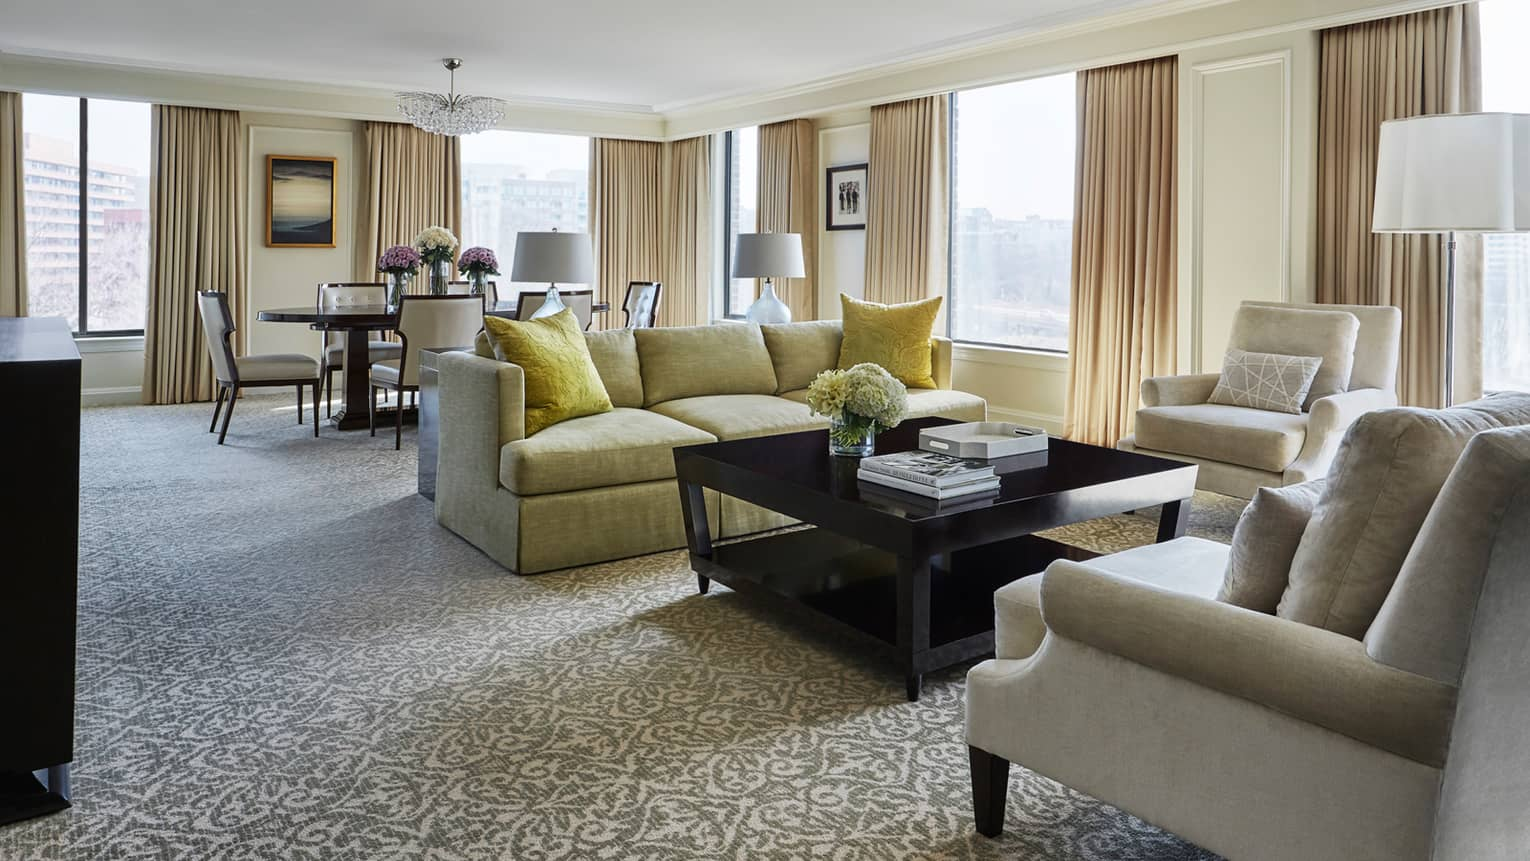 Presidential Suite East Wing dining table, living room with side of yellow sofa, two white armchairs